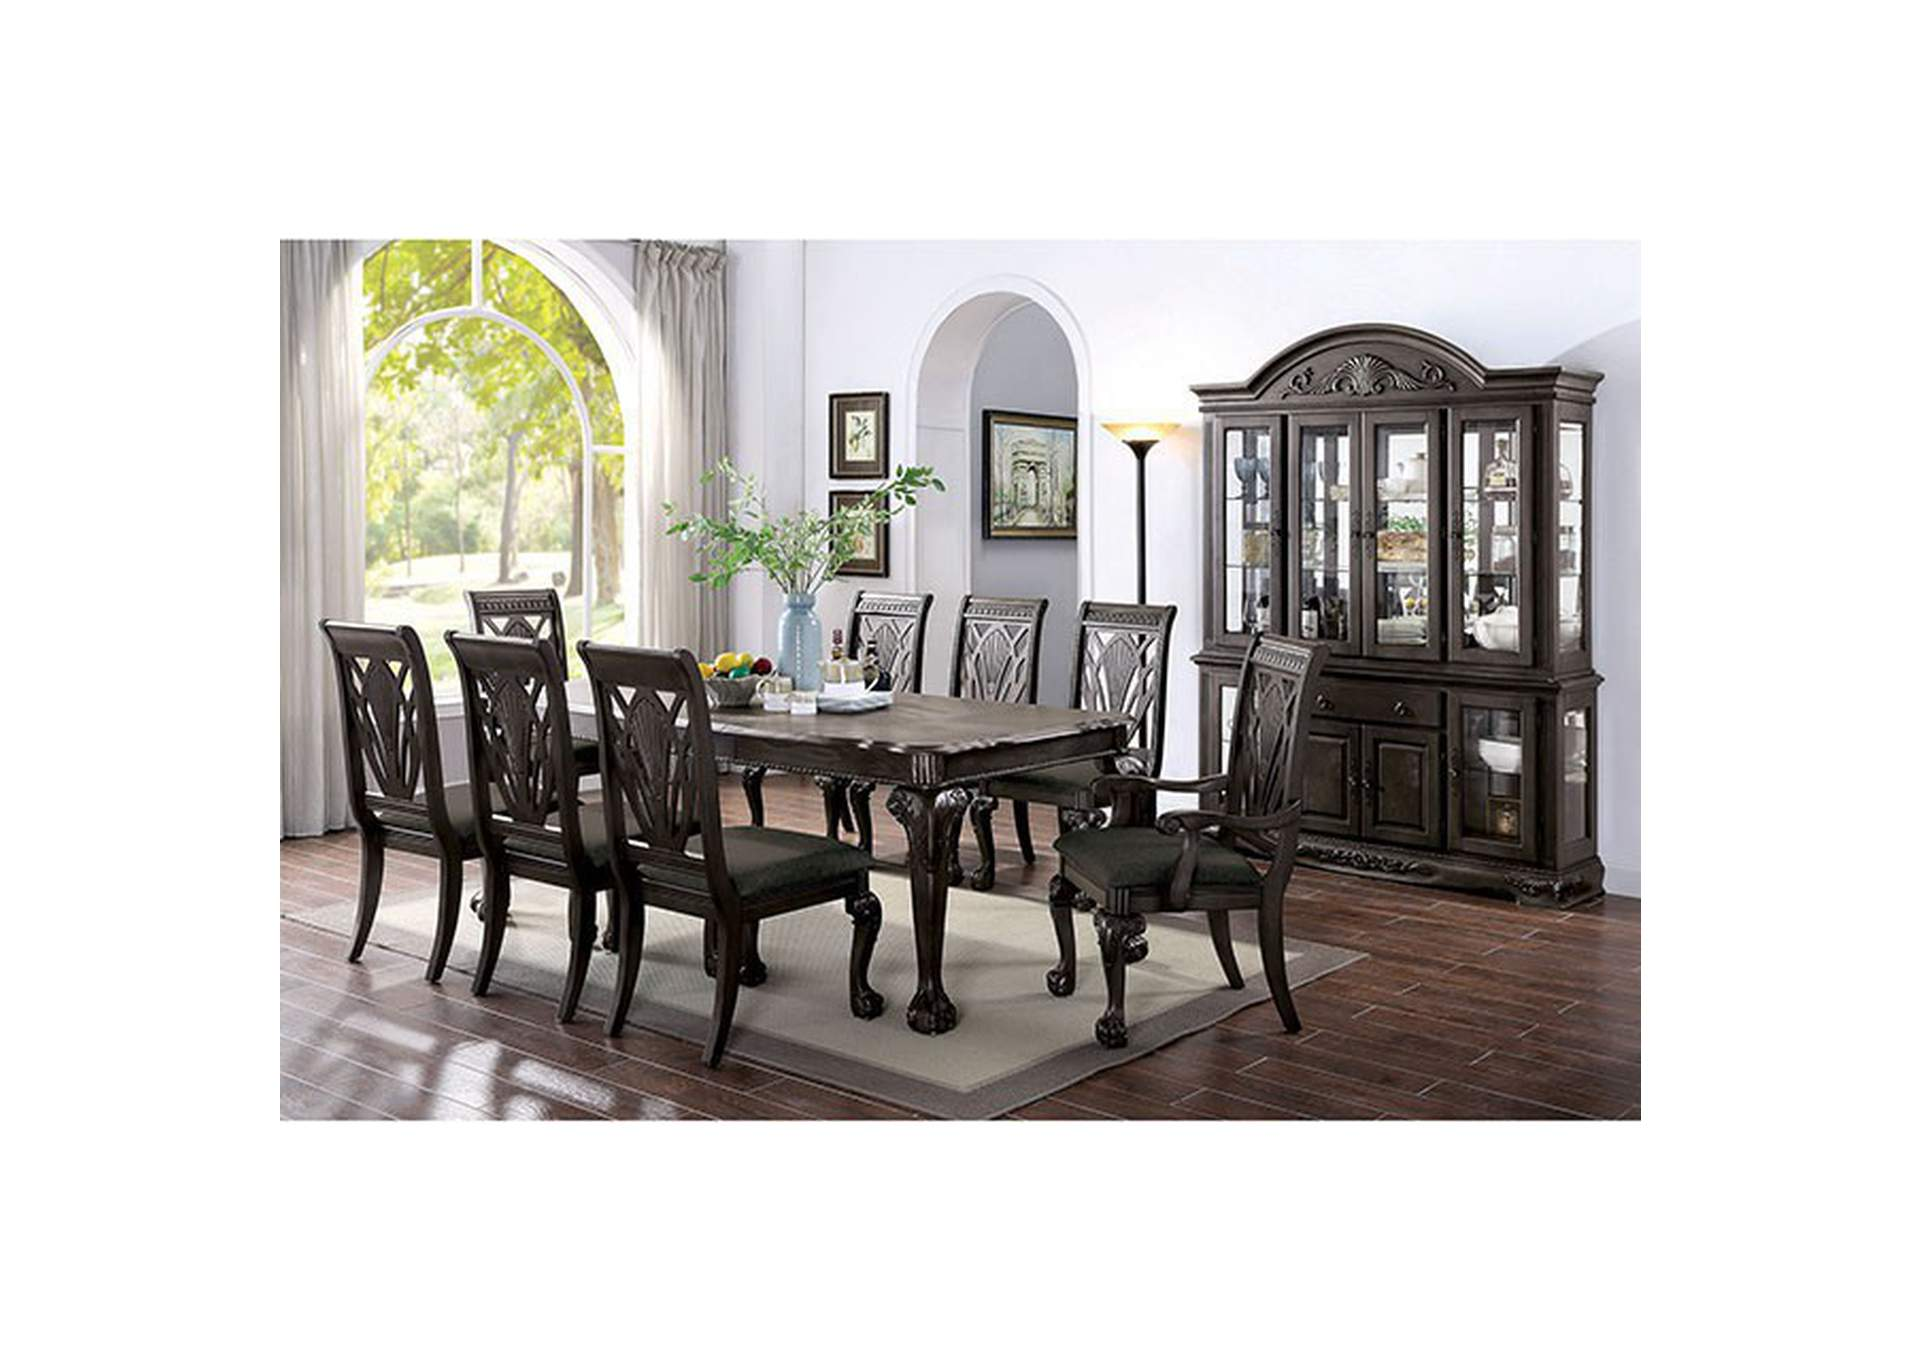 Petersburg Dining Table,Furniture of America